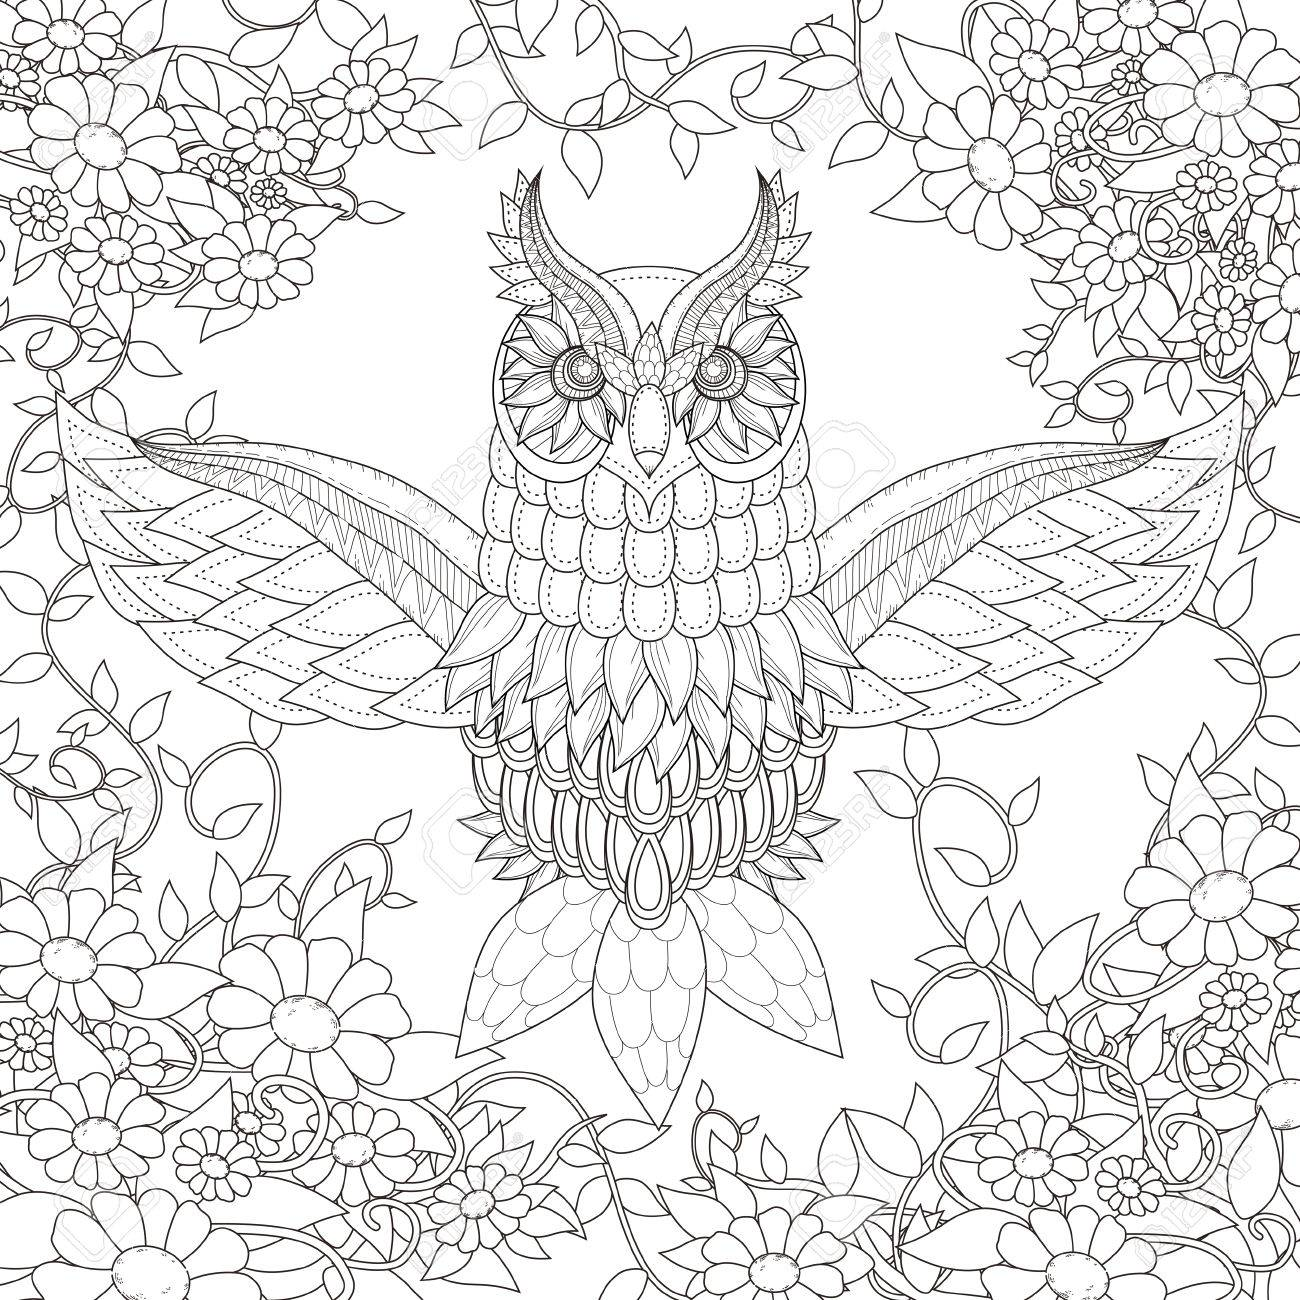 Beautiful Owl Coloring Page Design In Exquisite Style Stock Vector